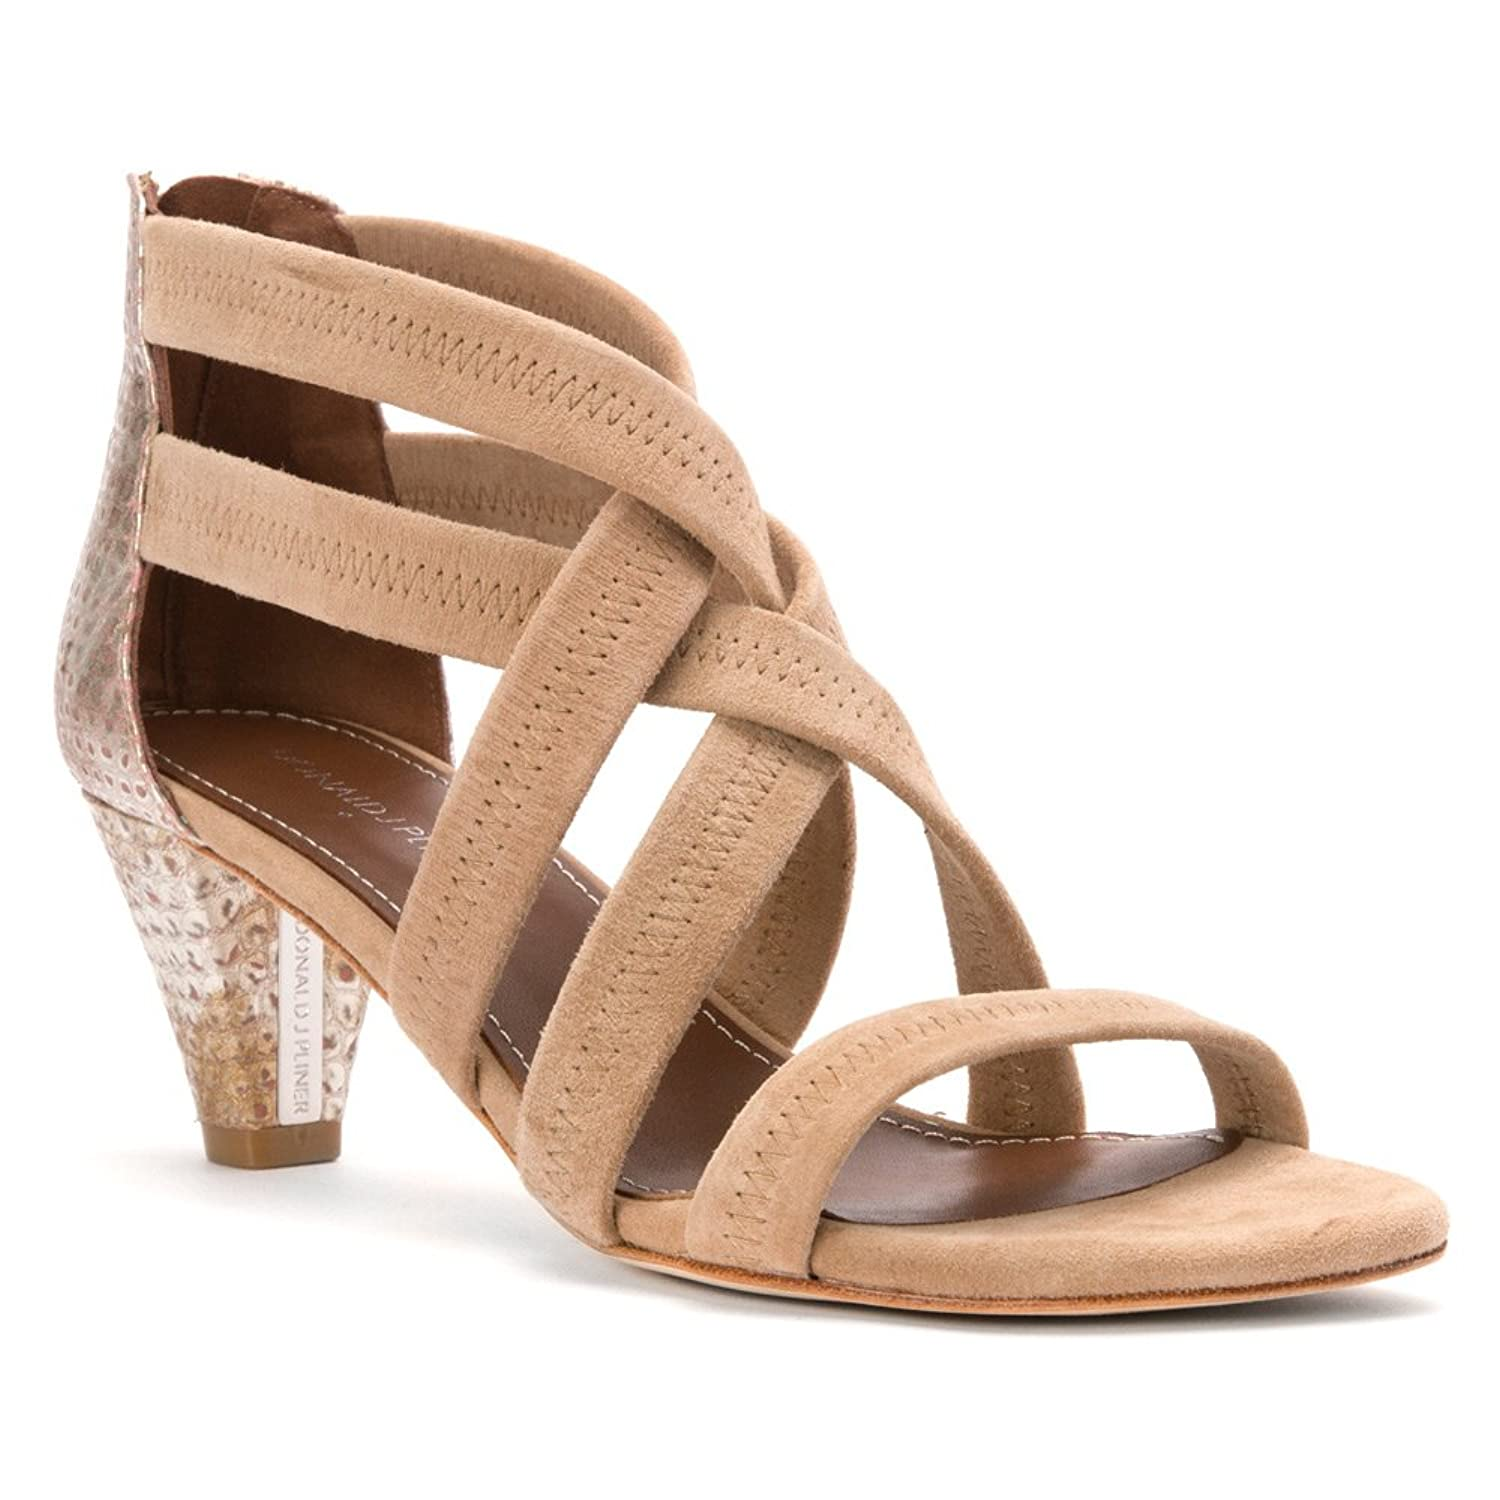 donald j pliner outlet t6kw  Donald J Pliner Women's Vida Dress Sandal outlet